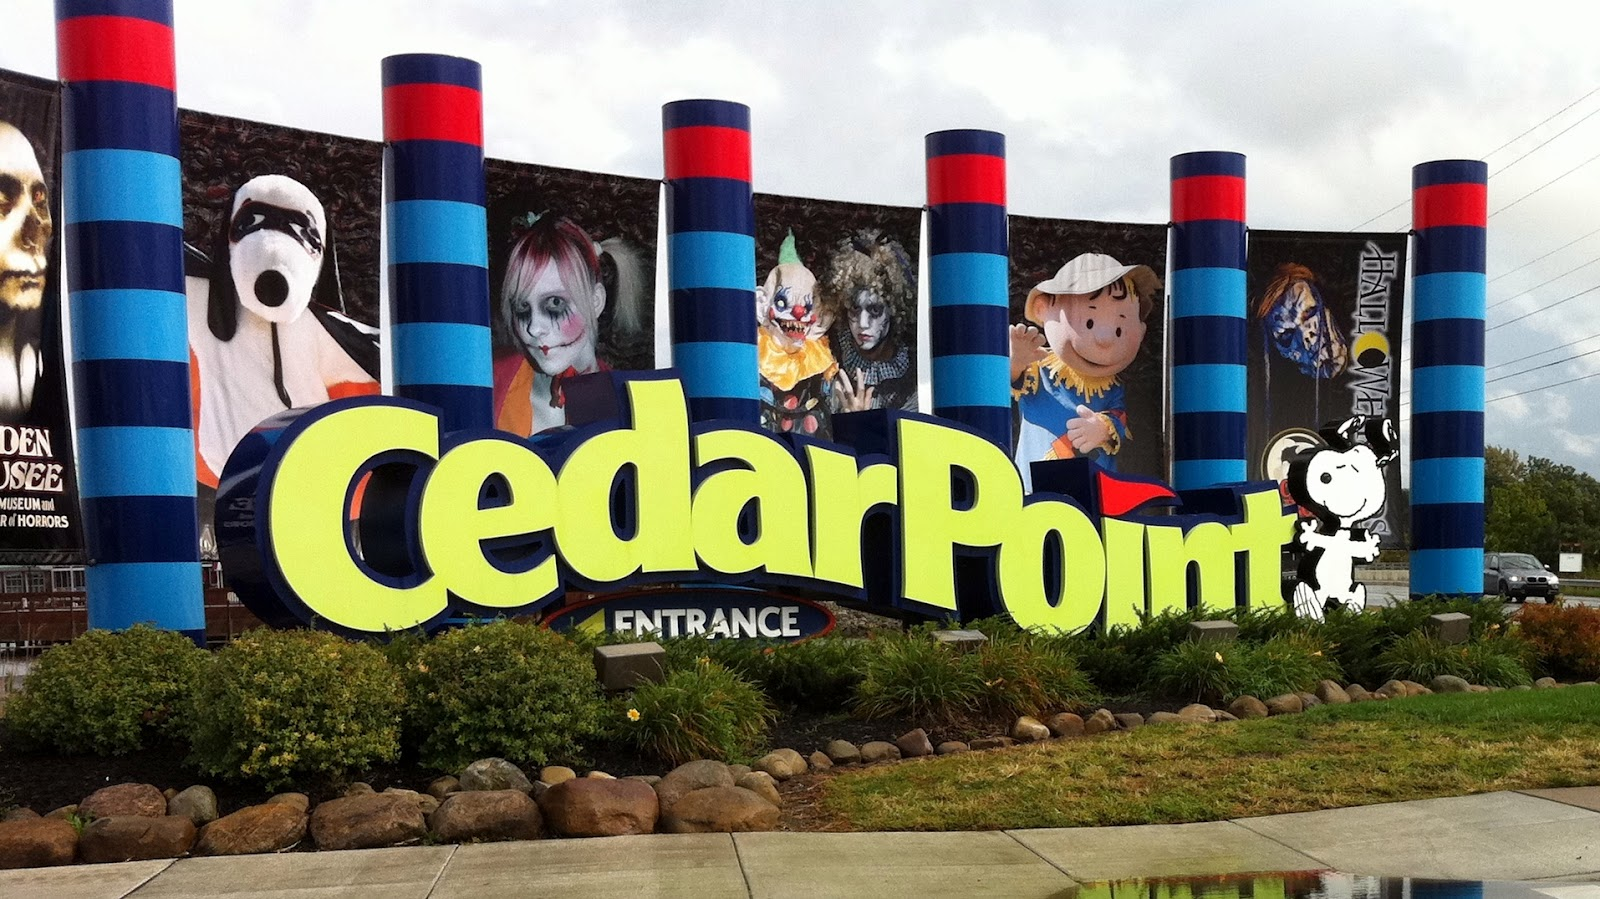 cedar point entrance with halloween decorations